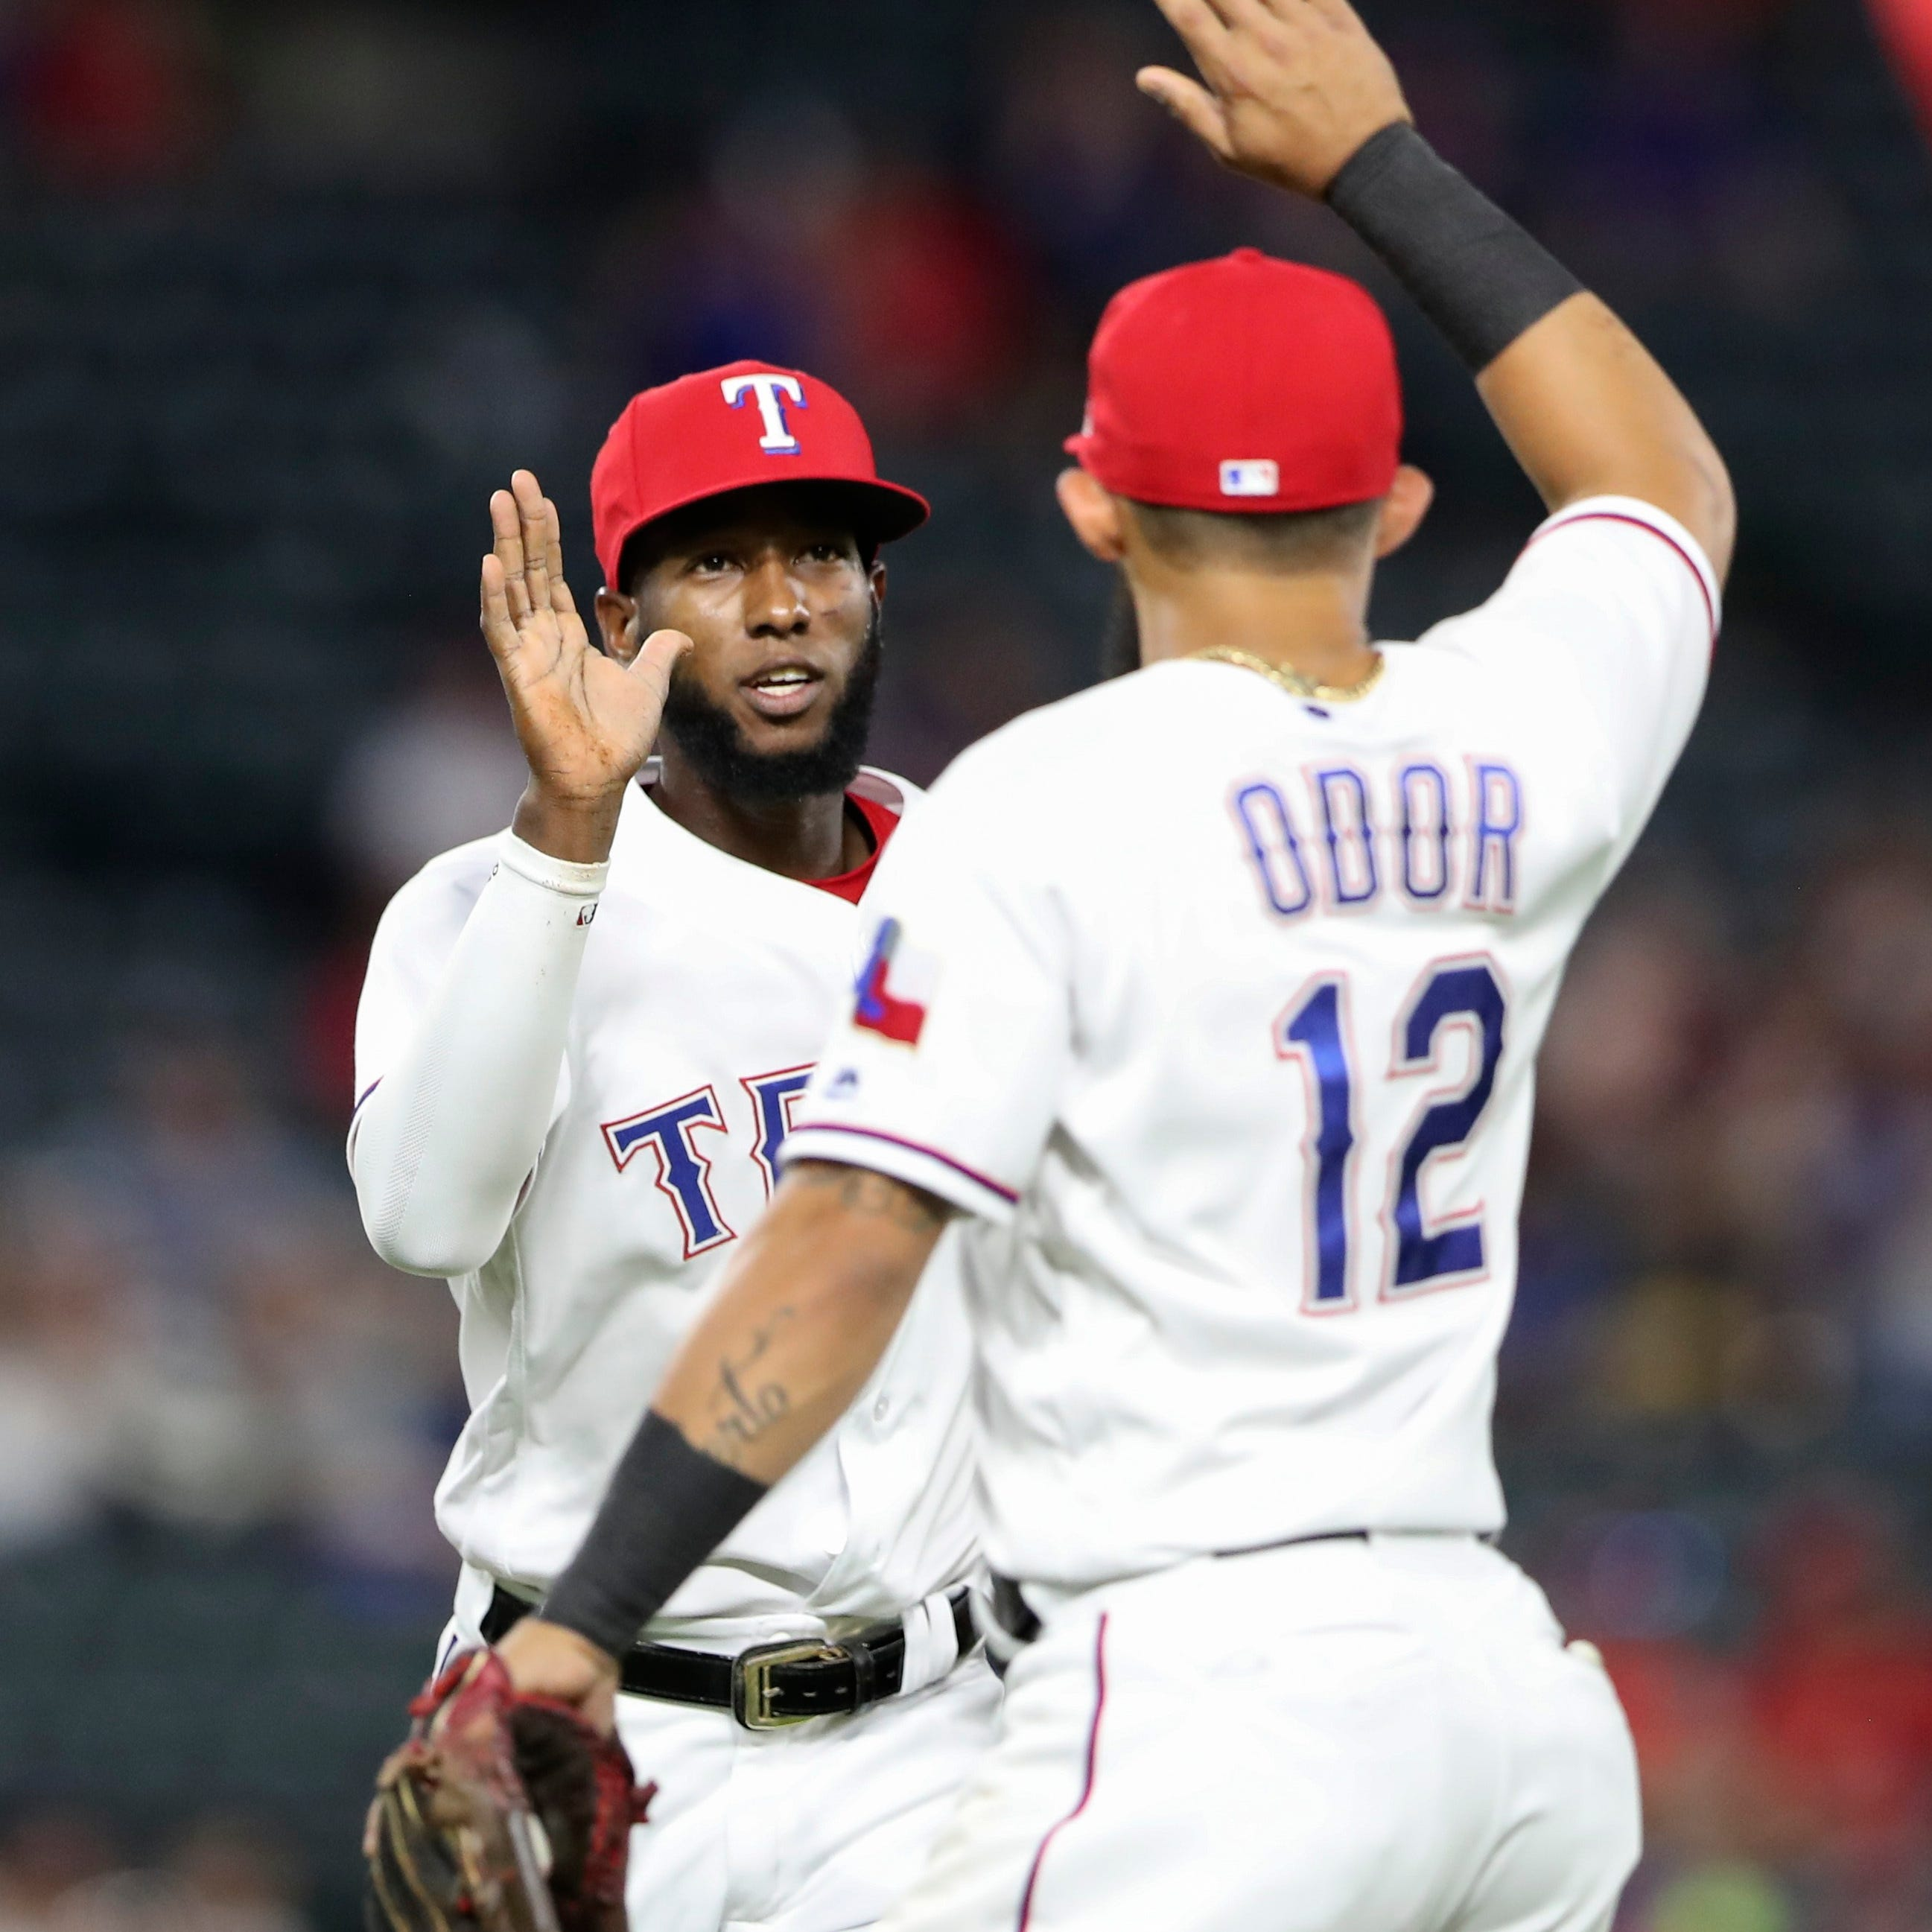 Texas Rangers turn rare triple play vs. Los Angeles Angels not seen in 106 years